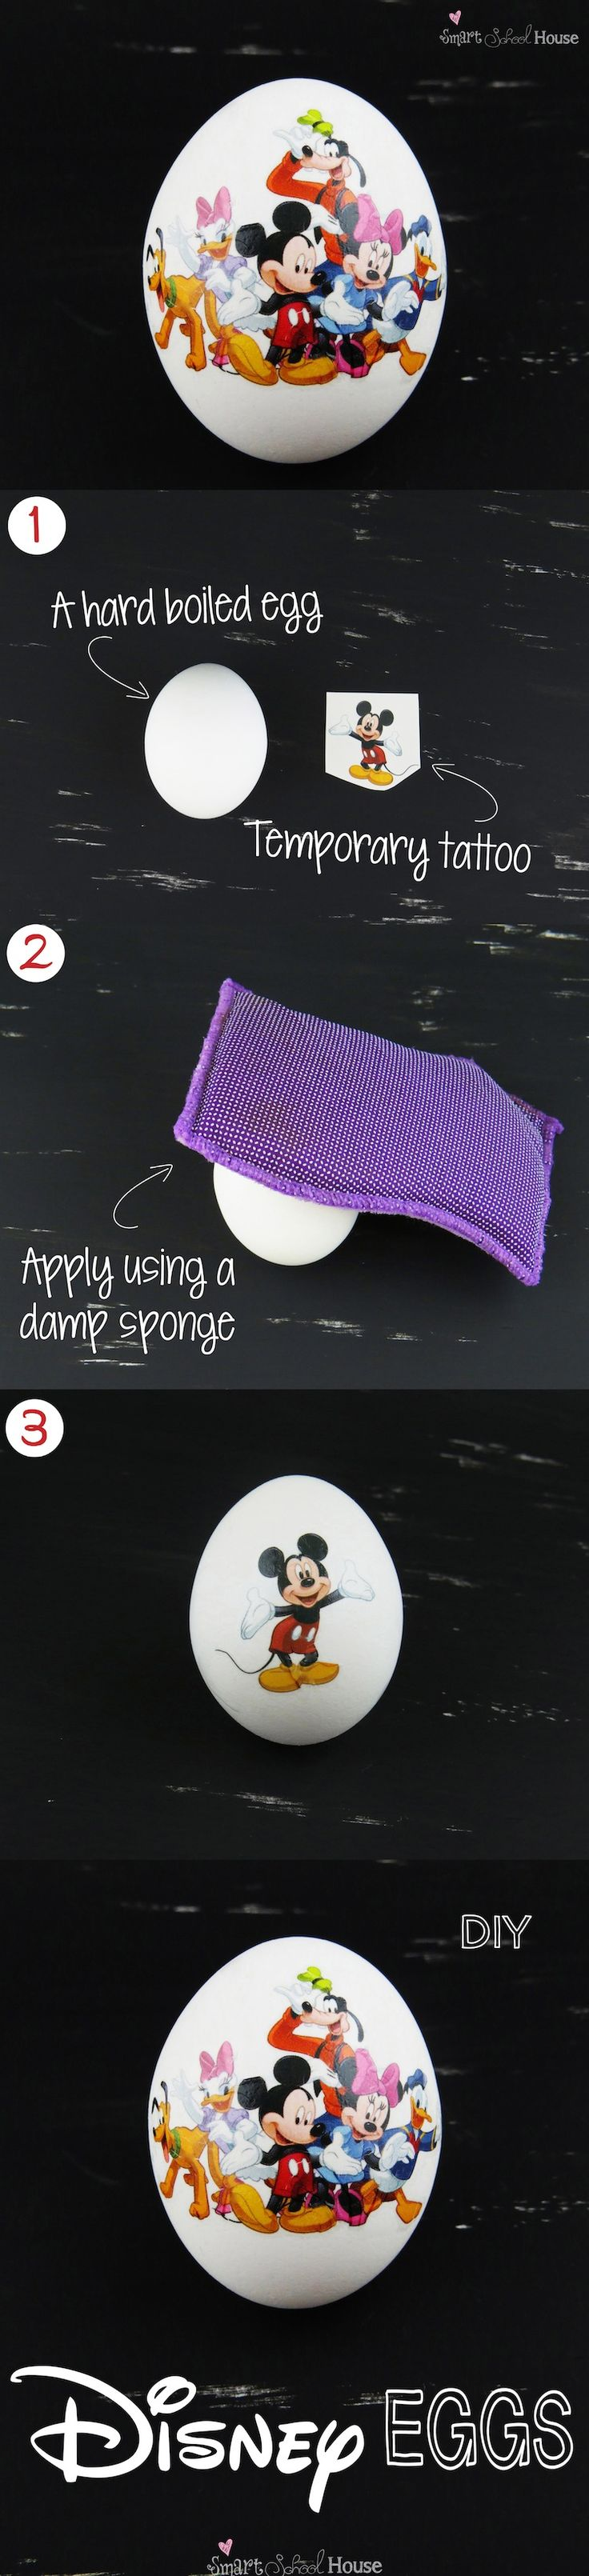 223 best easter gifts images on pinterest bunny rabbit easter how to make disney eggs for easter this craft is so easy disney negle Choice Image